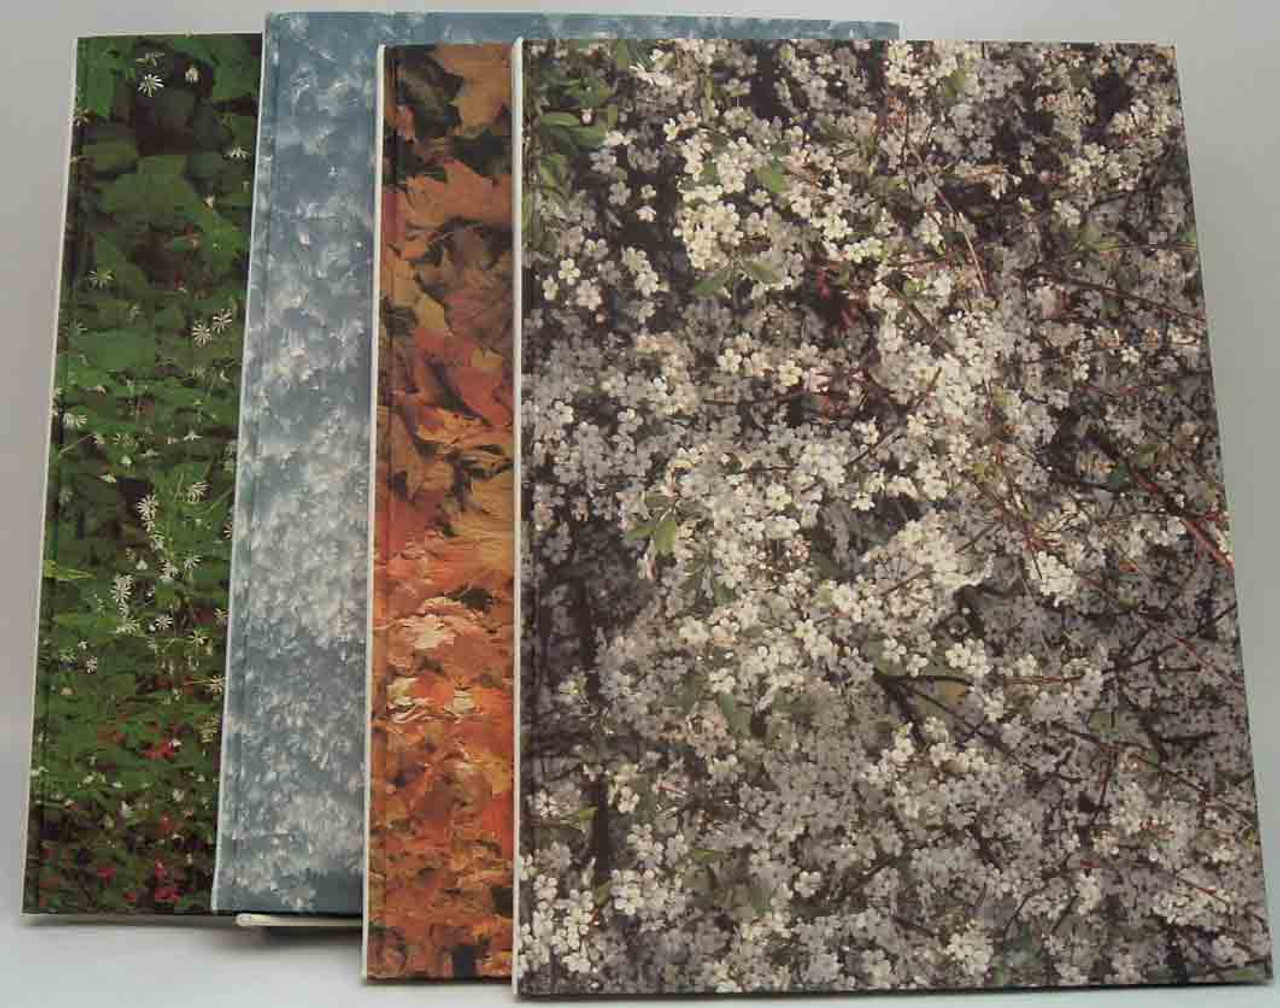 Cloth bindings of different colors